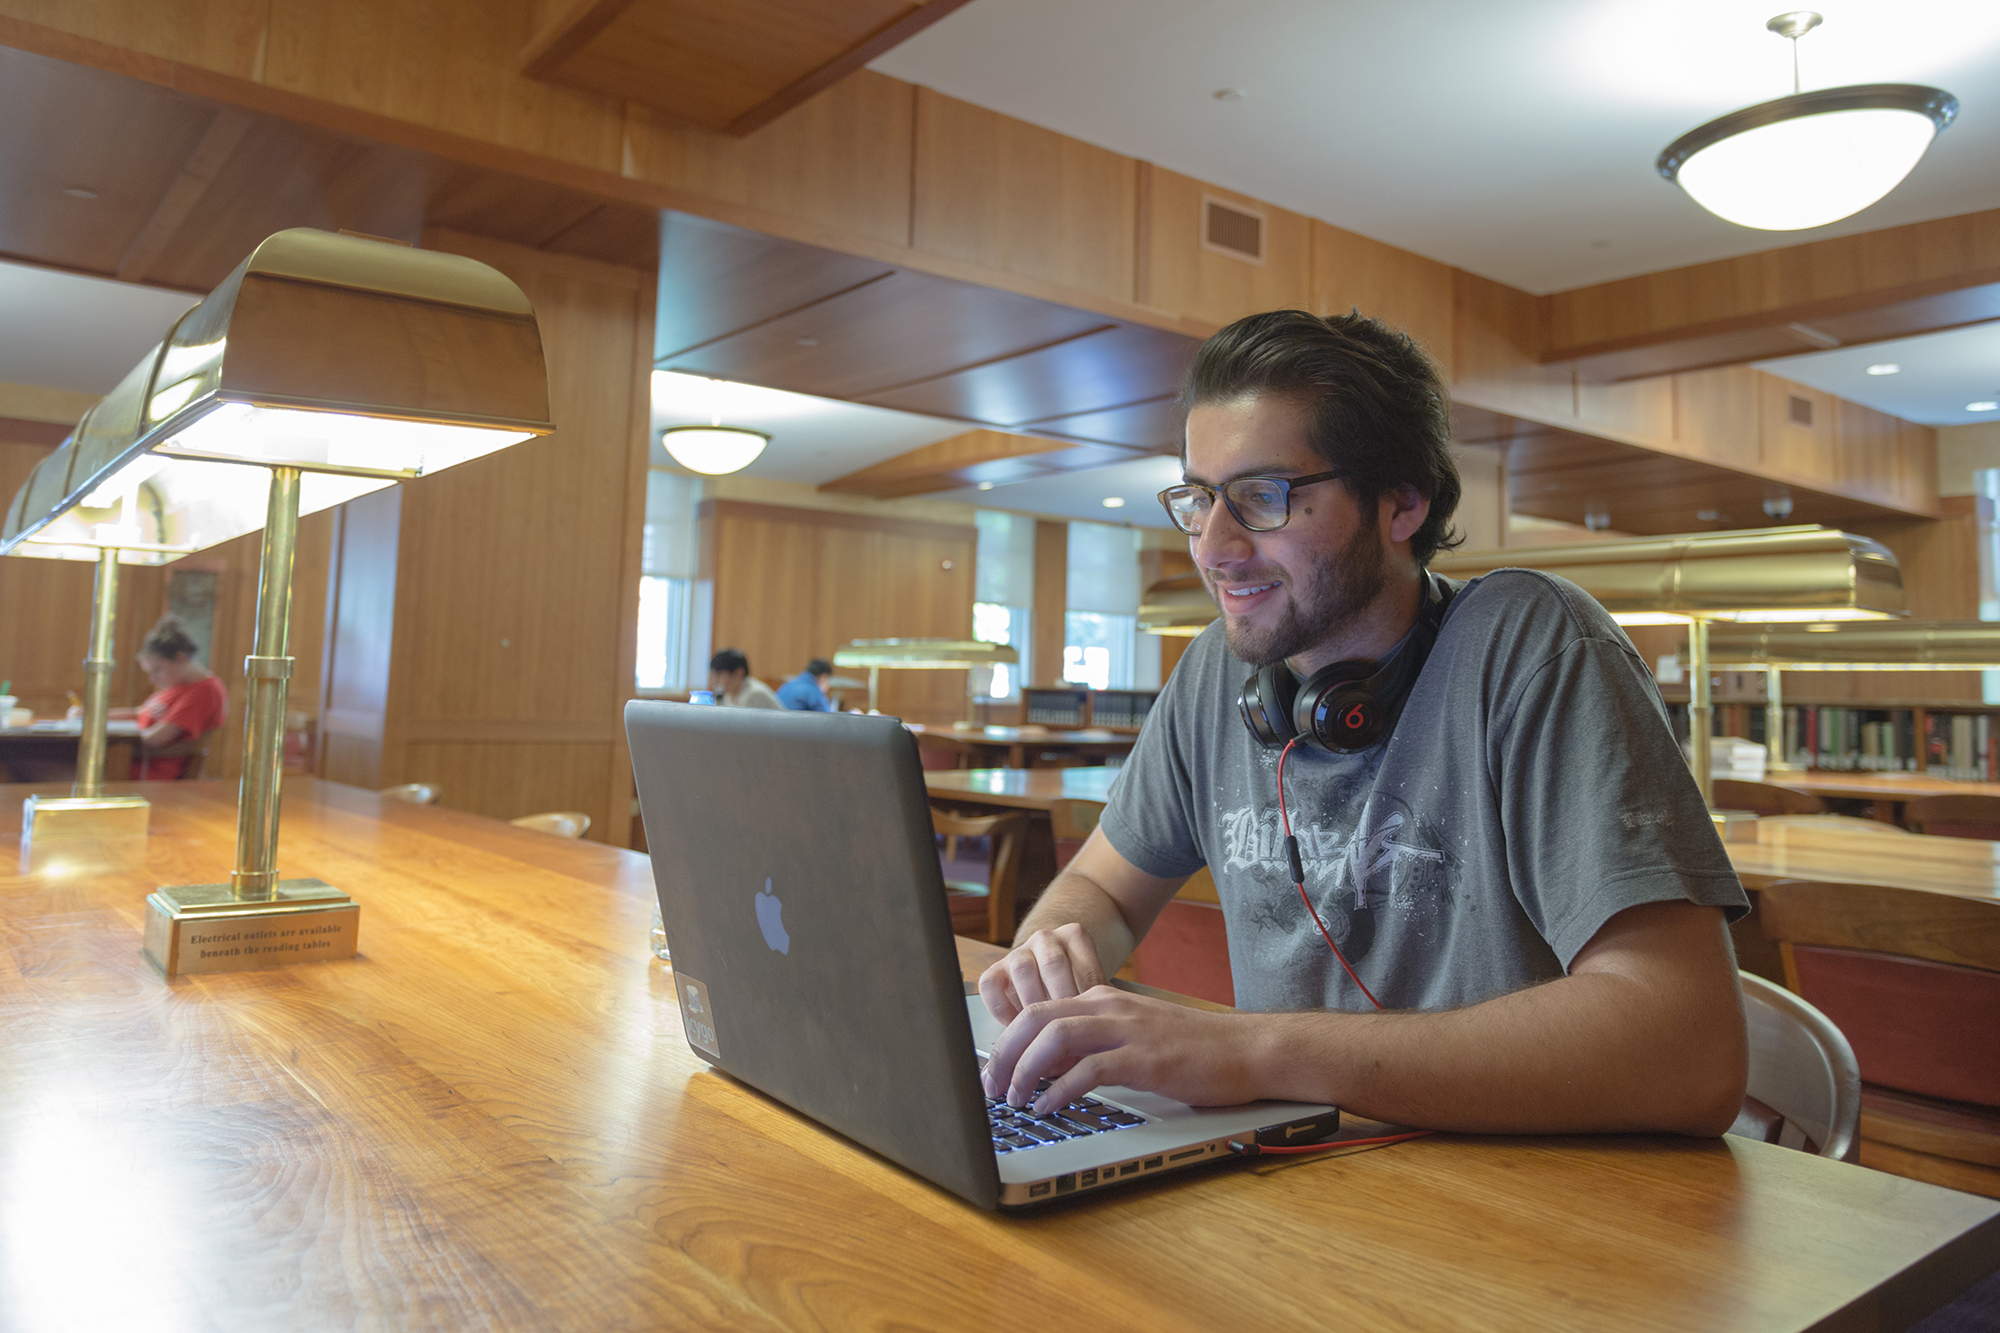 A student works at a laptop at a long wooden table